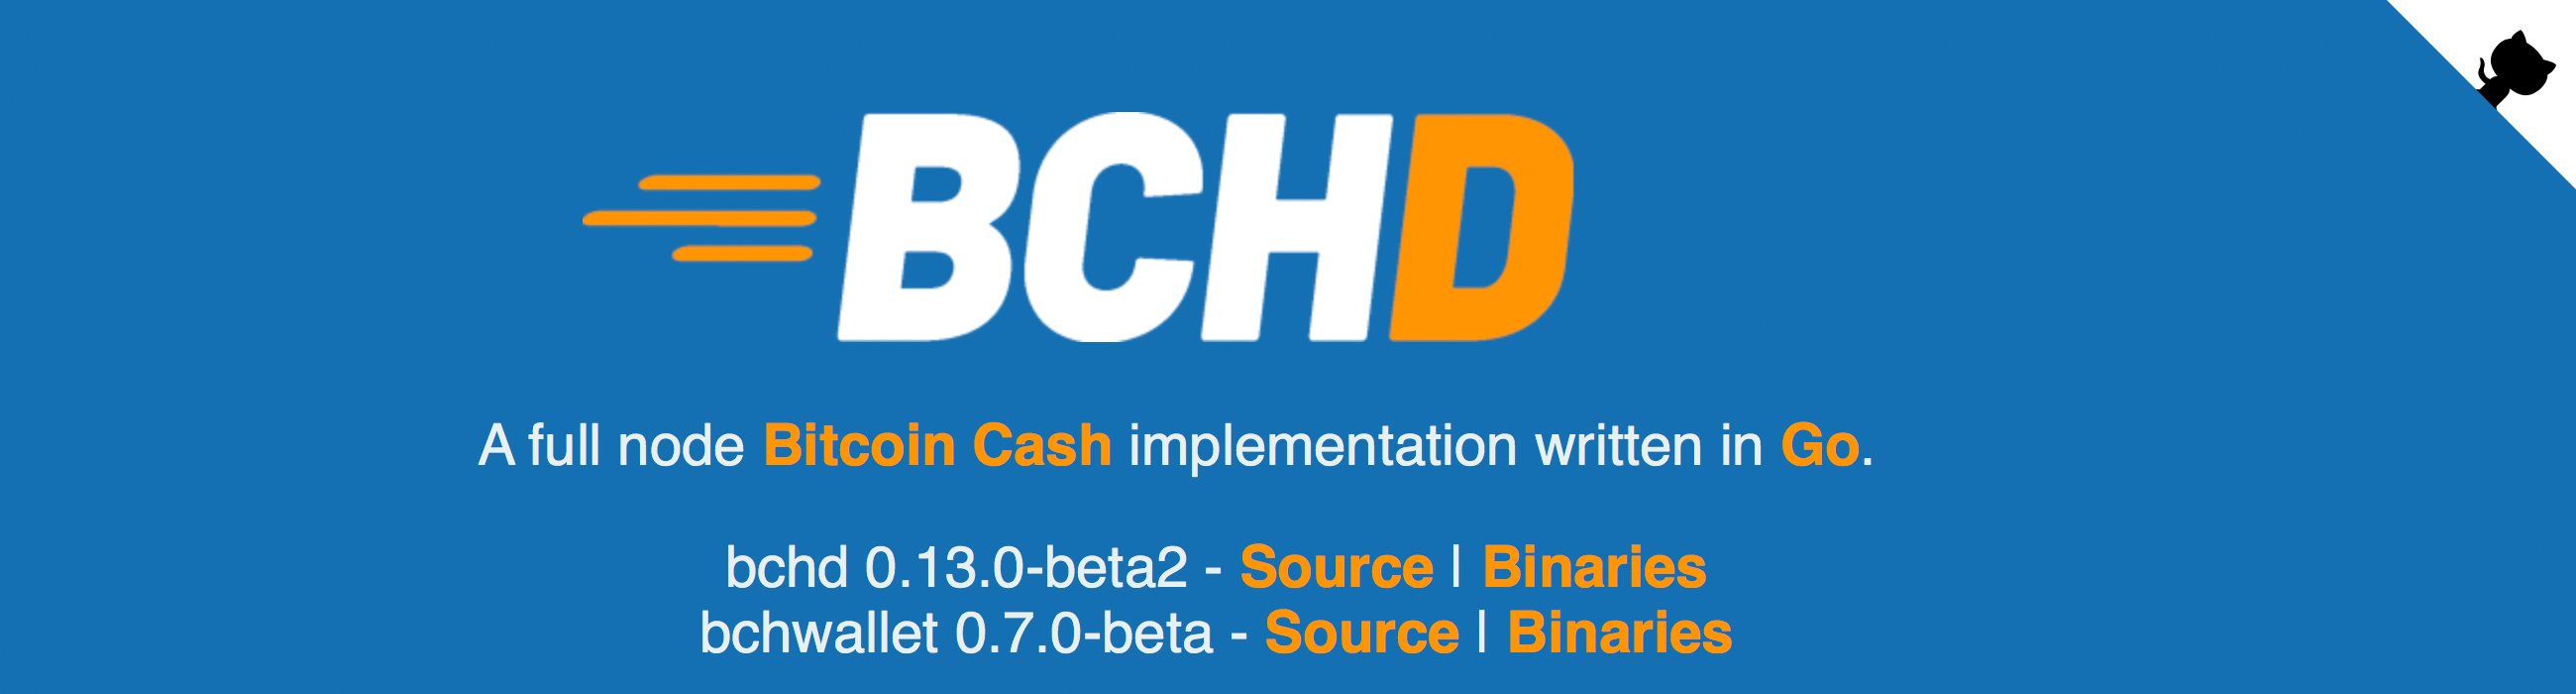 Bitcoin Cash Node Bchd Syncs in Just Over an Hour With Fast Mode